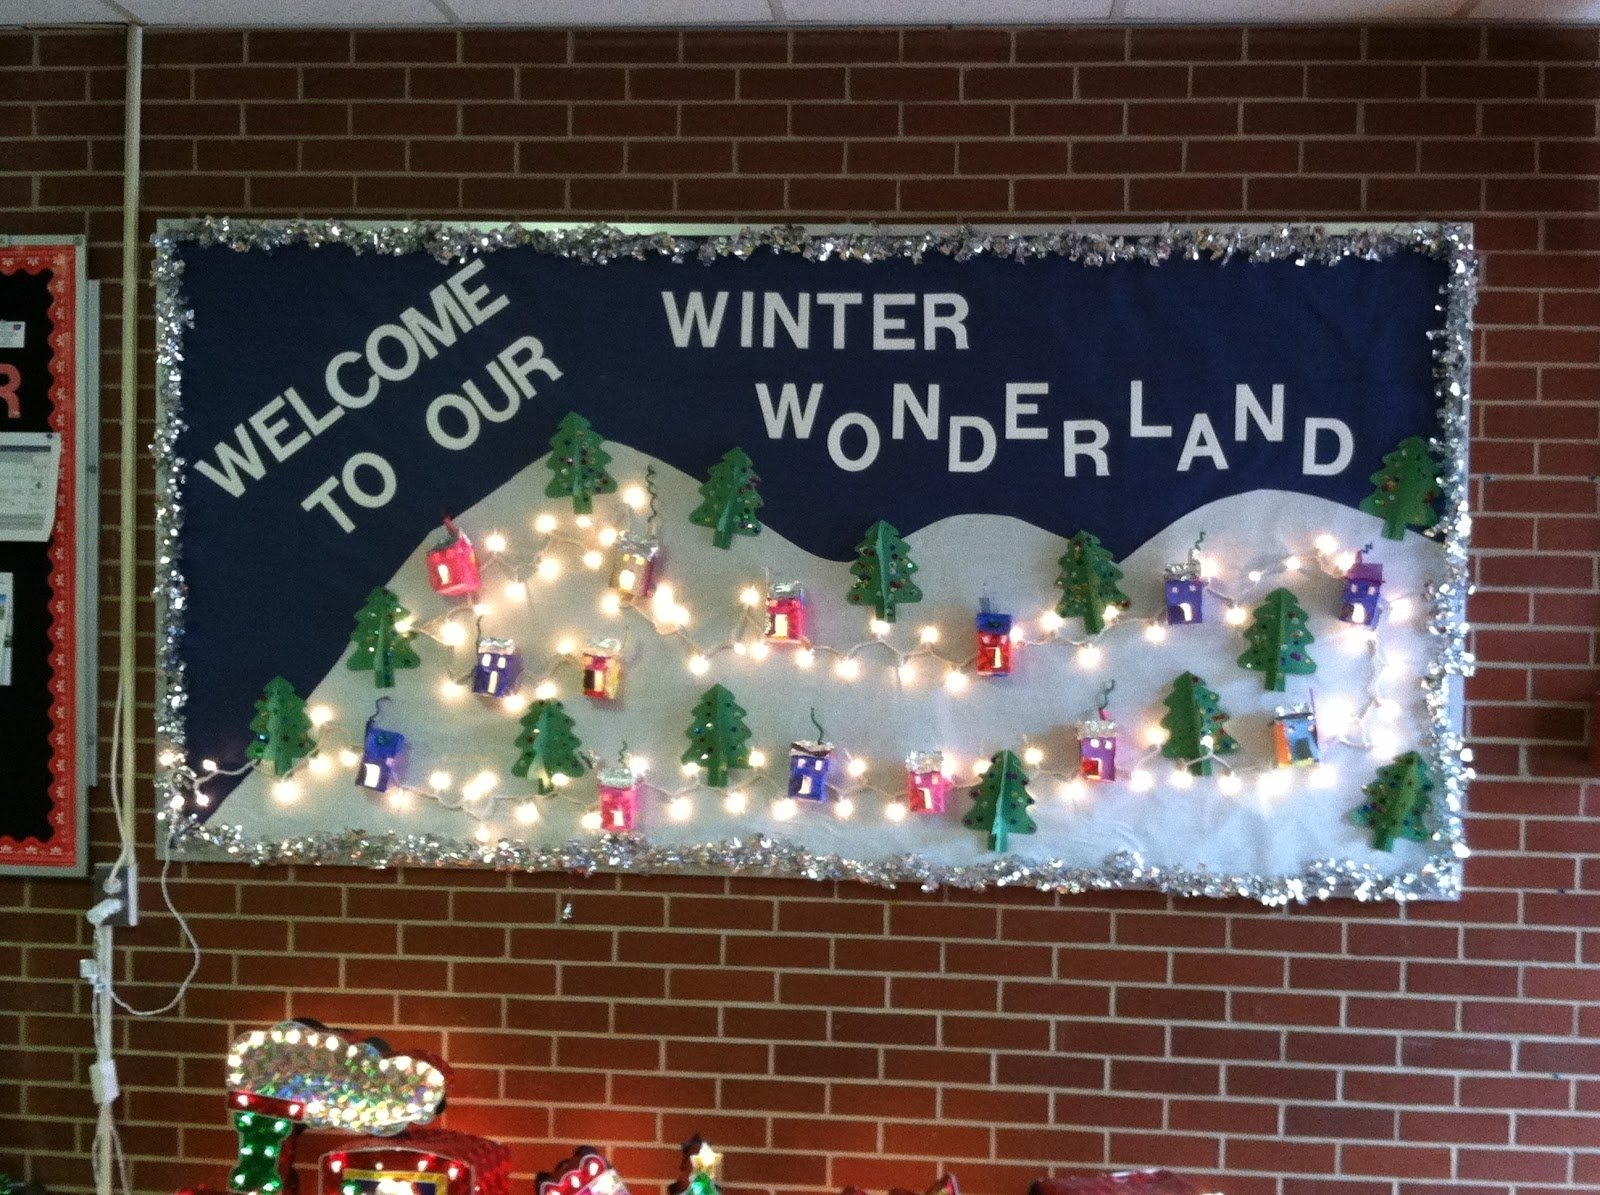 10 Great Winter Bulletin Board Ideas For Preschool a view from a different angle my kindergartens winter wonderland 2020